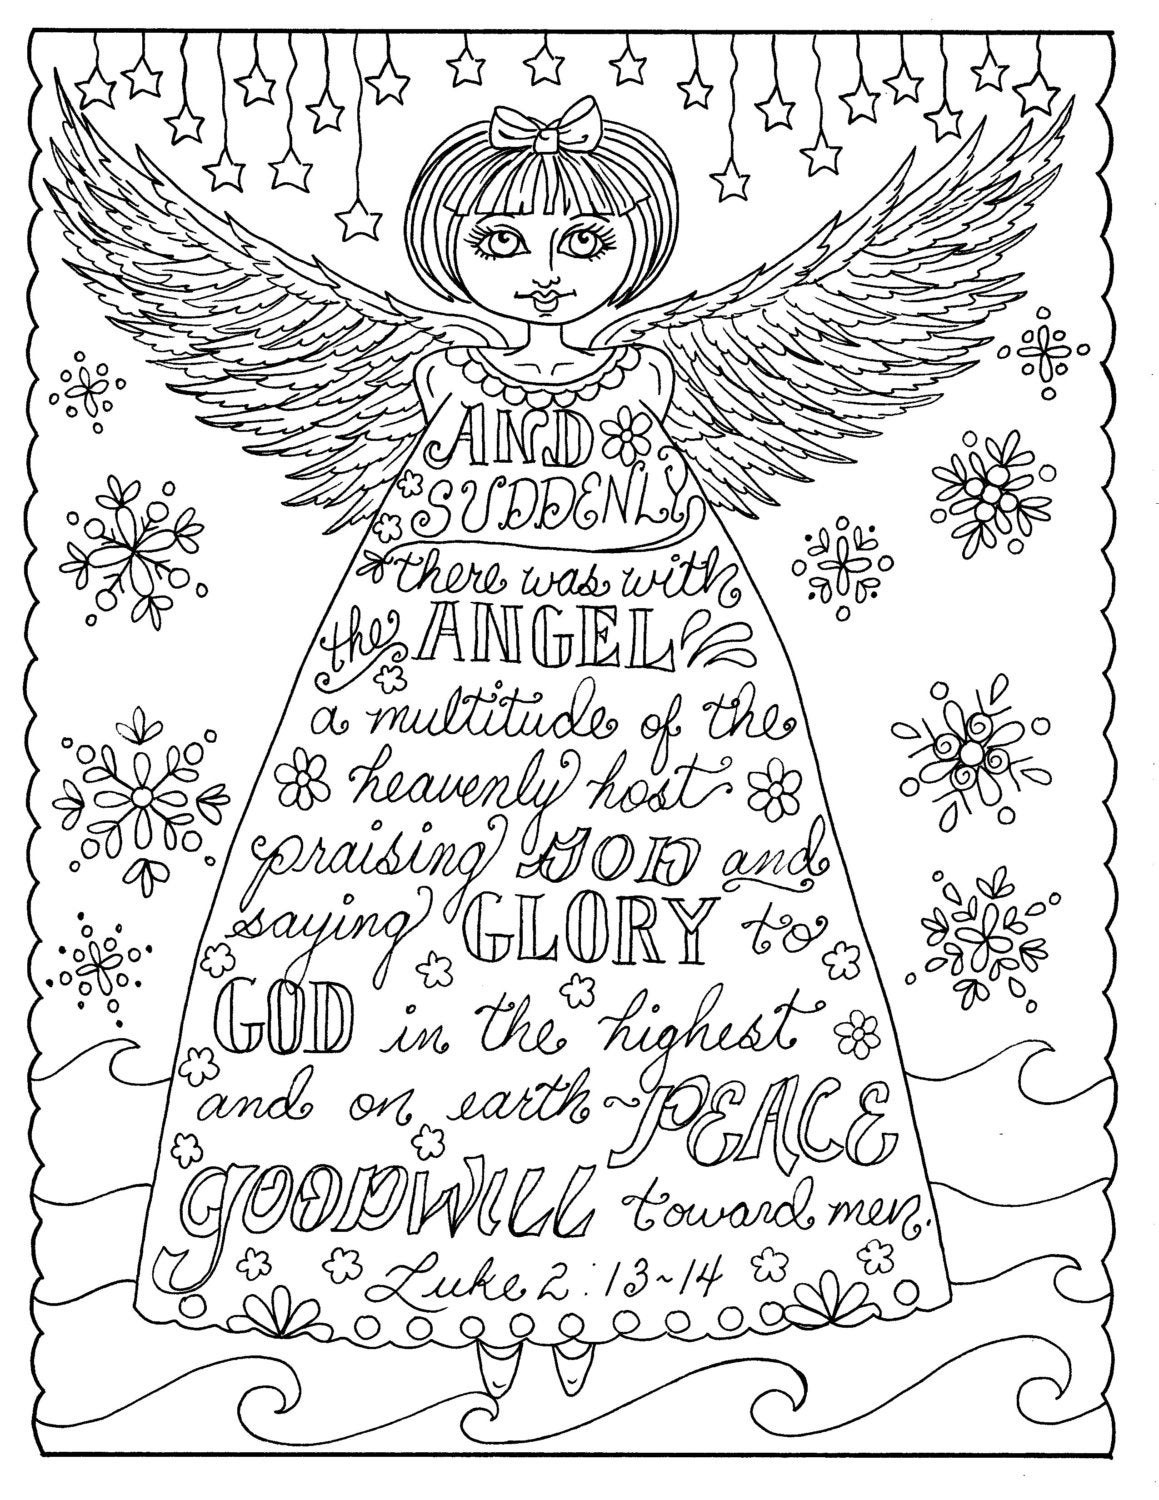 free christian christmas coloring pages printable christmas angel christian coloring page adult coloring free christian coloring christmas printable pages